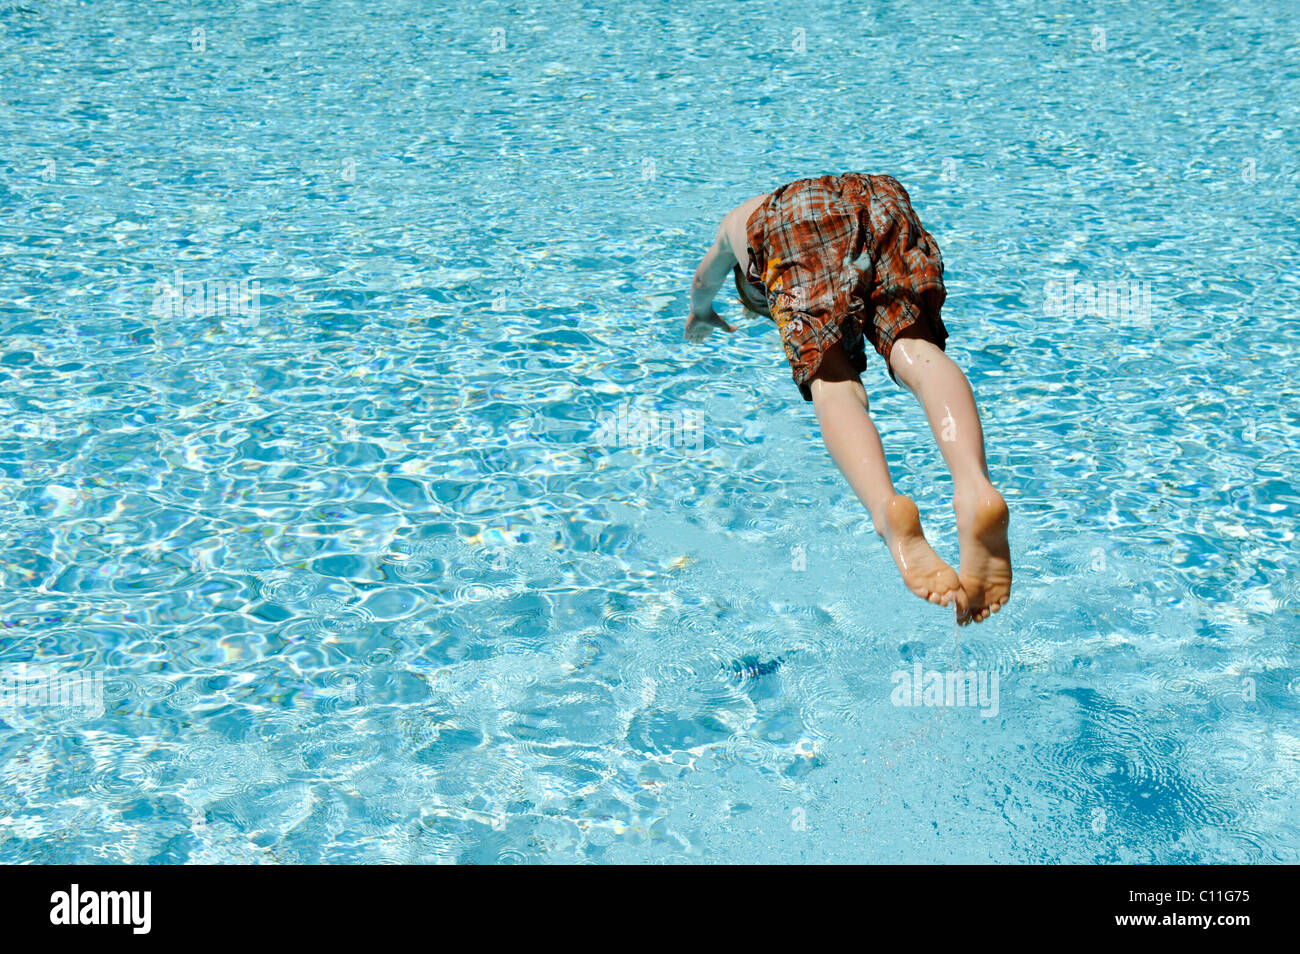 Heat stock photos heat stock images alamy - How to warm up swimming pool water ...